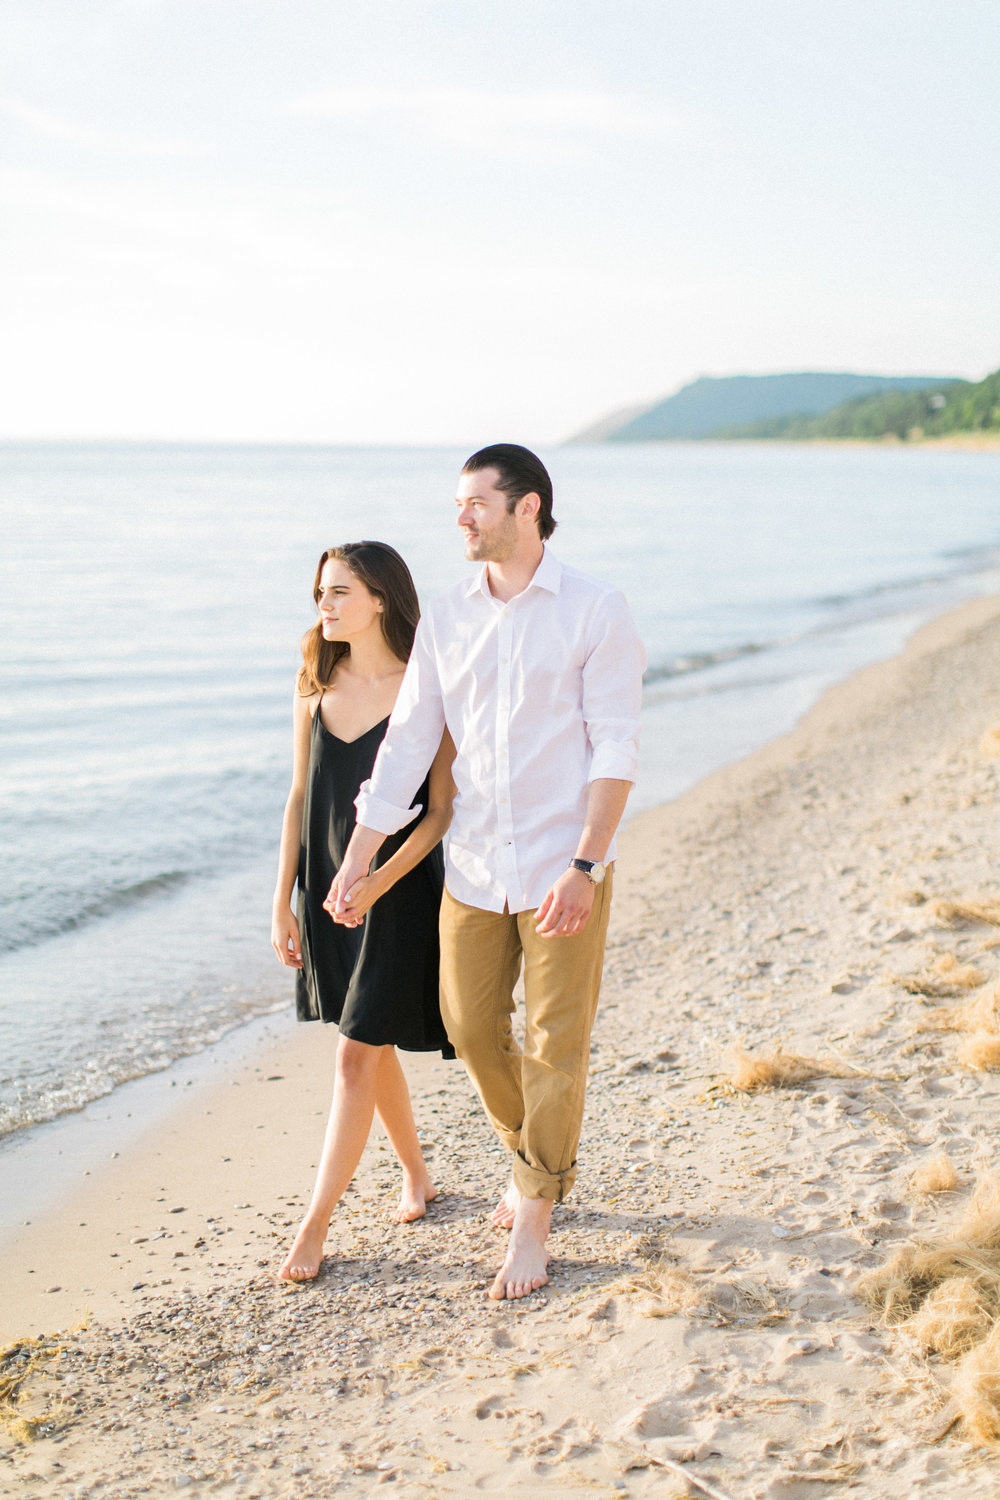 Rachelle & Kevin | Lake Michigan, MI